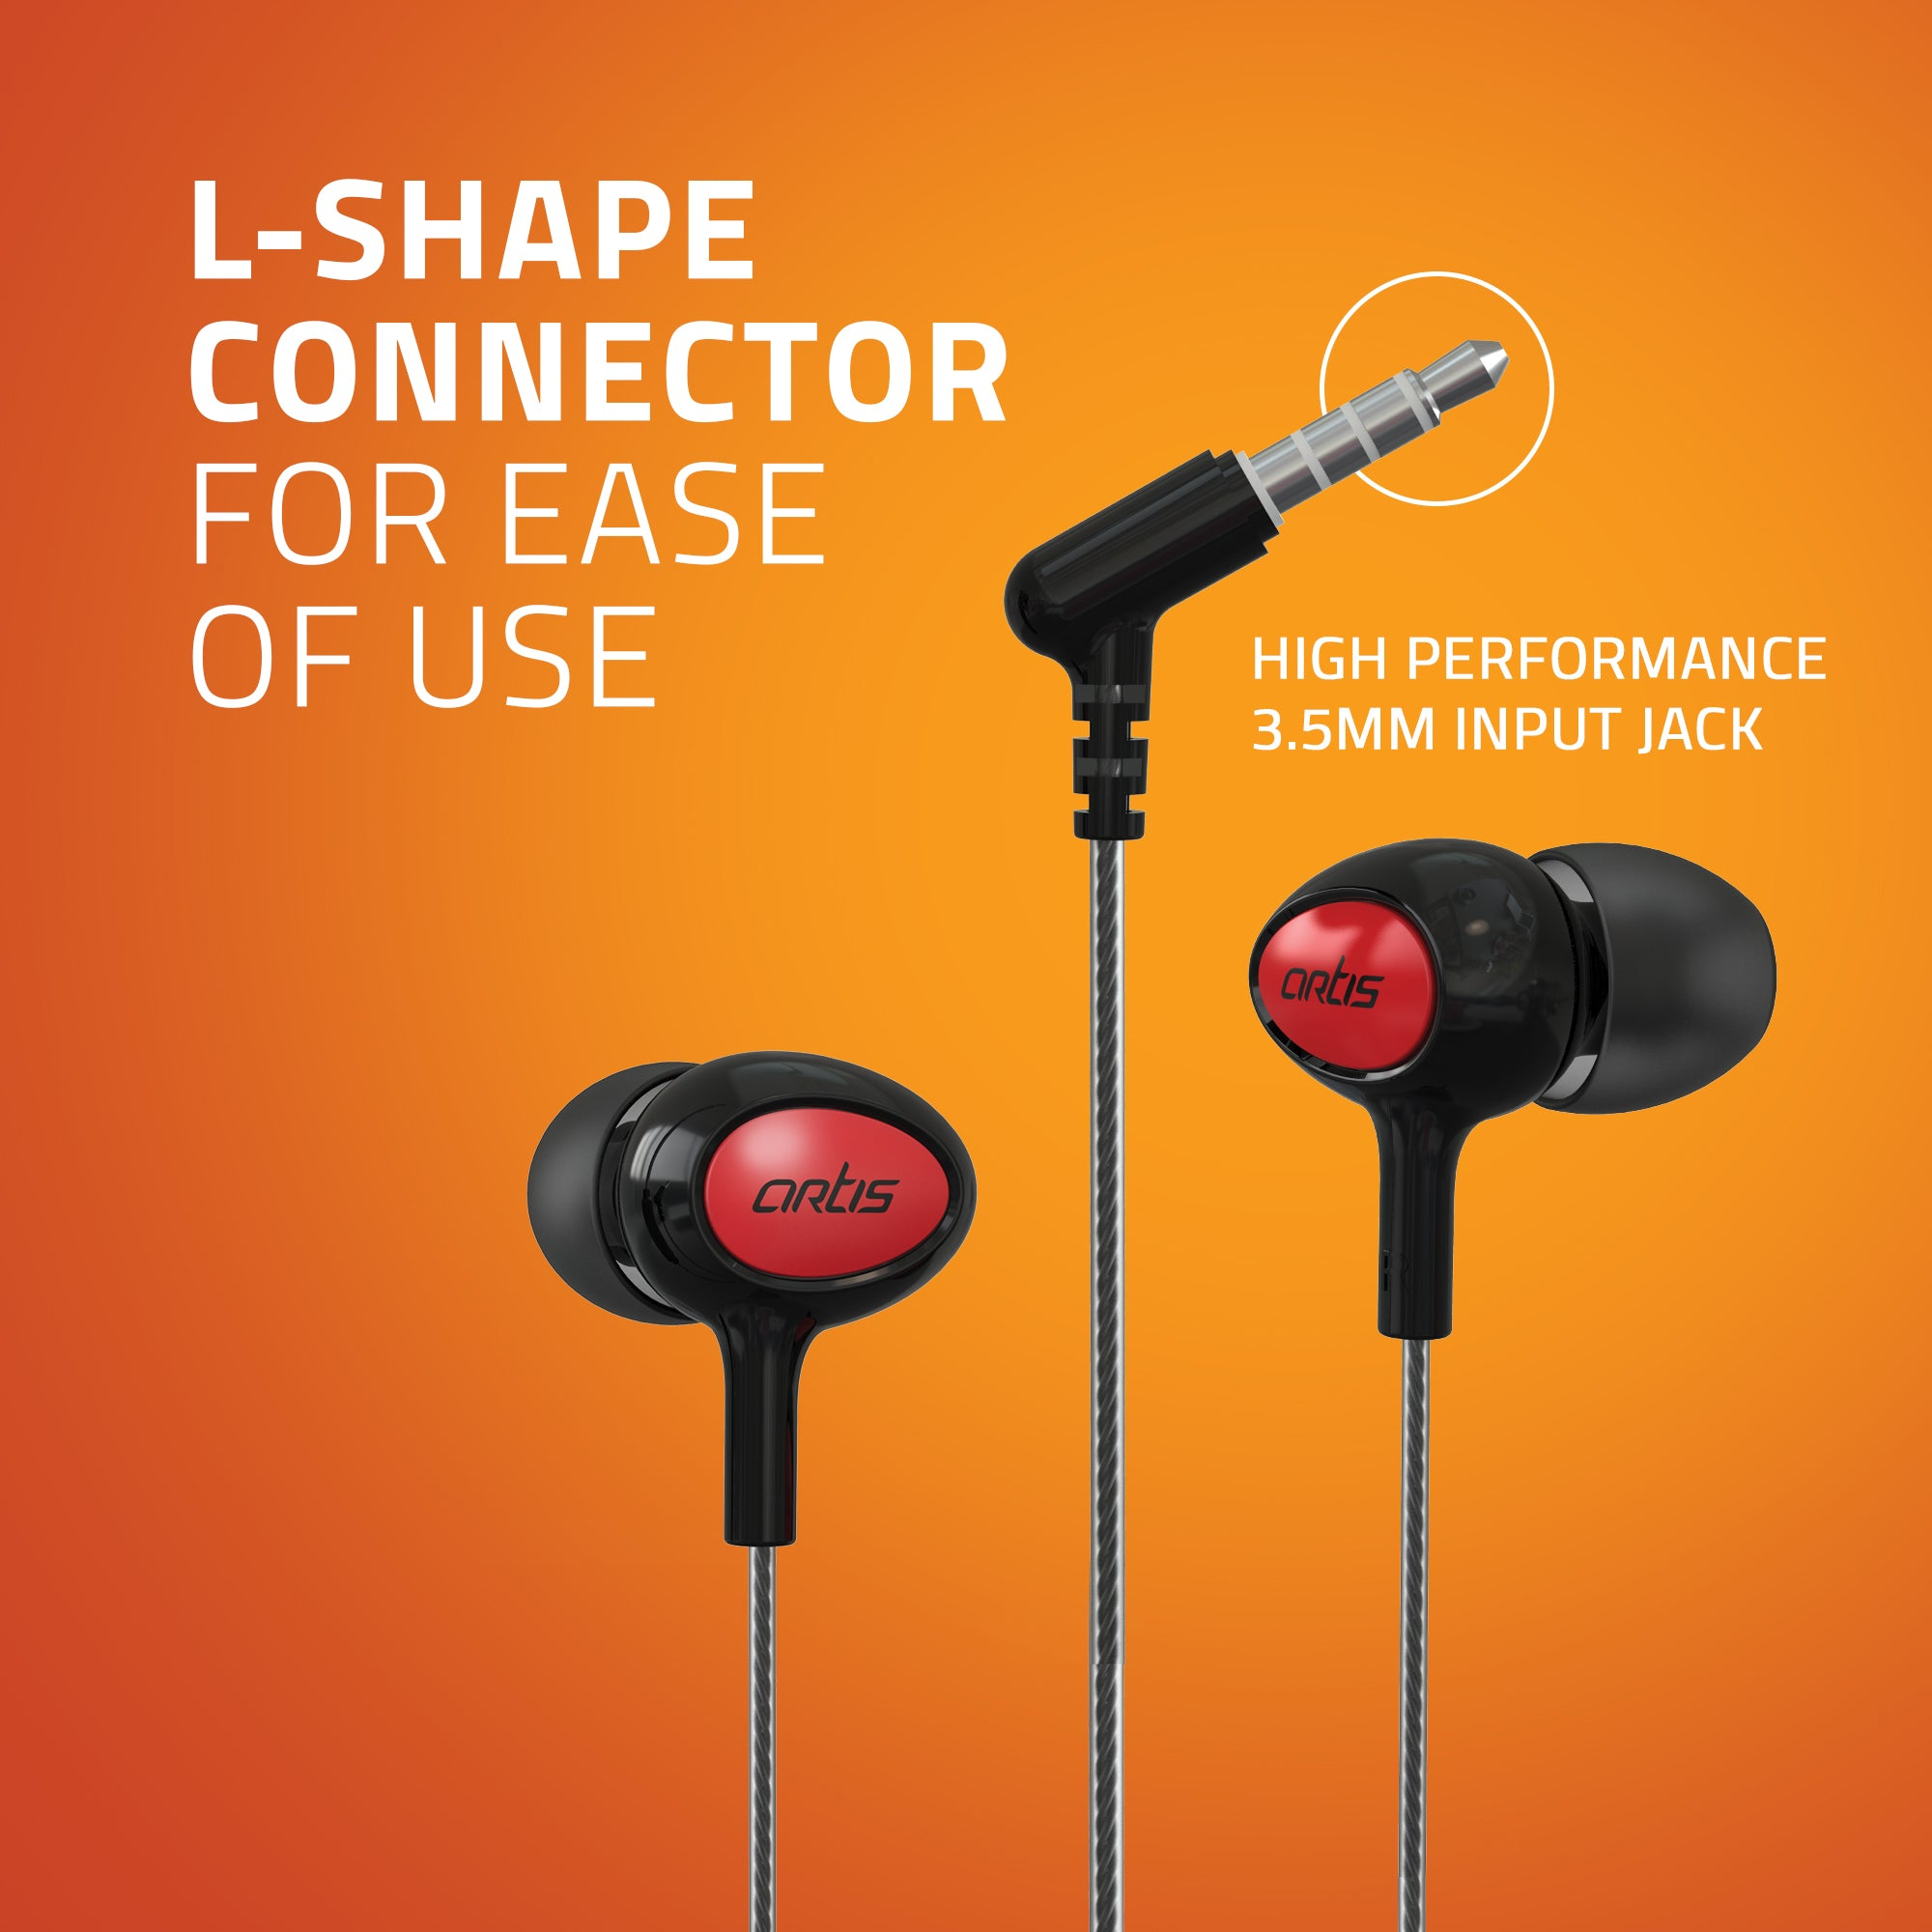 E400M Artis Earphones With Mic - L Shape Connector